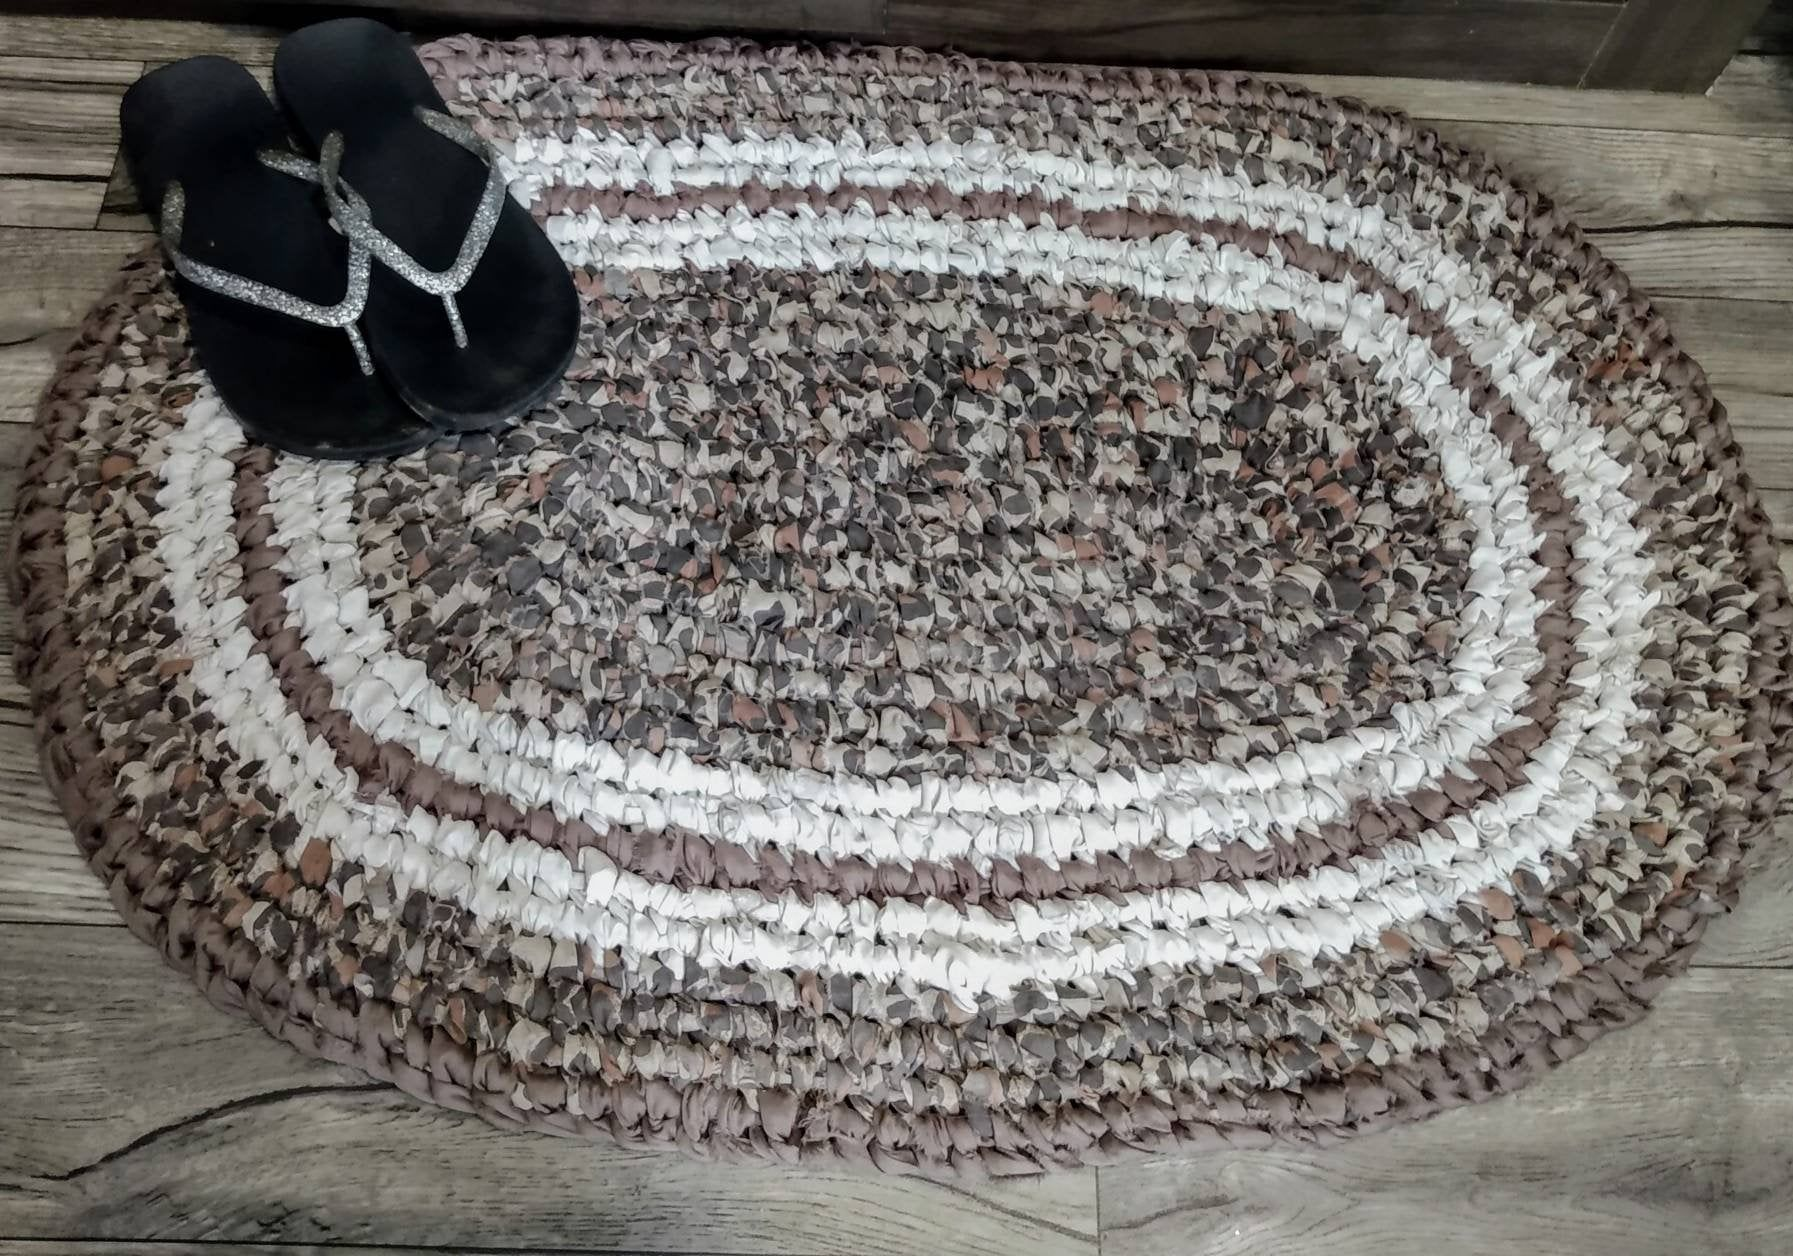 Free Shipping Handmade Oval Camo Rag Rug Brown Shades And Tan Toothbrush Knotted Machine Wash Dry Man Cave Cabin M Rag Rug Casual Home Decor Camo Decor